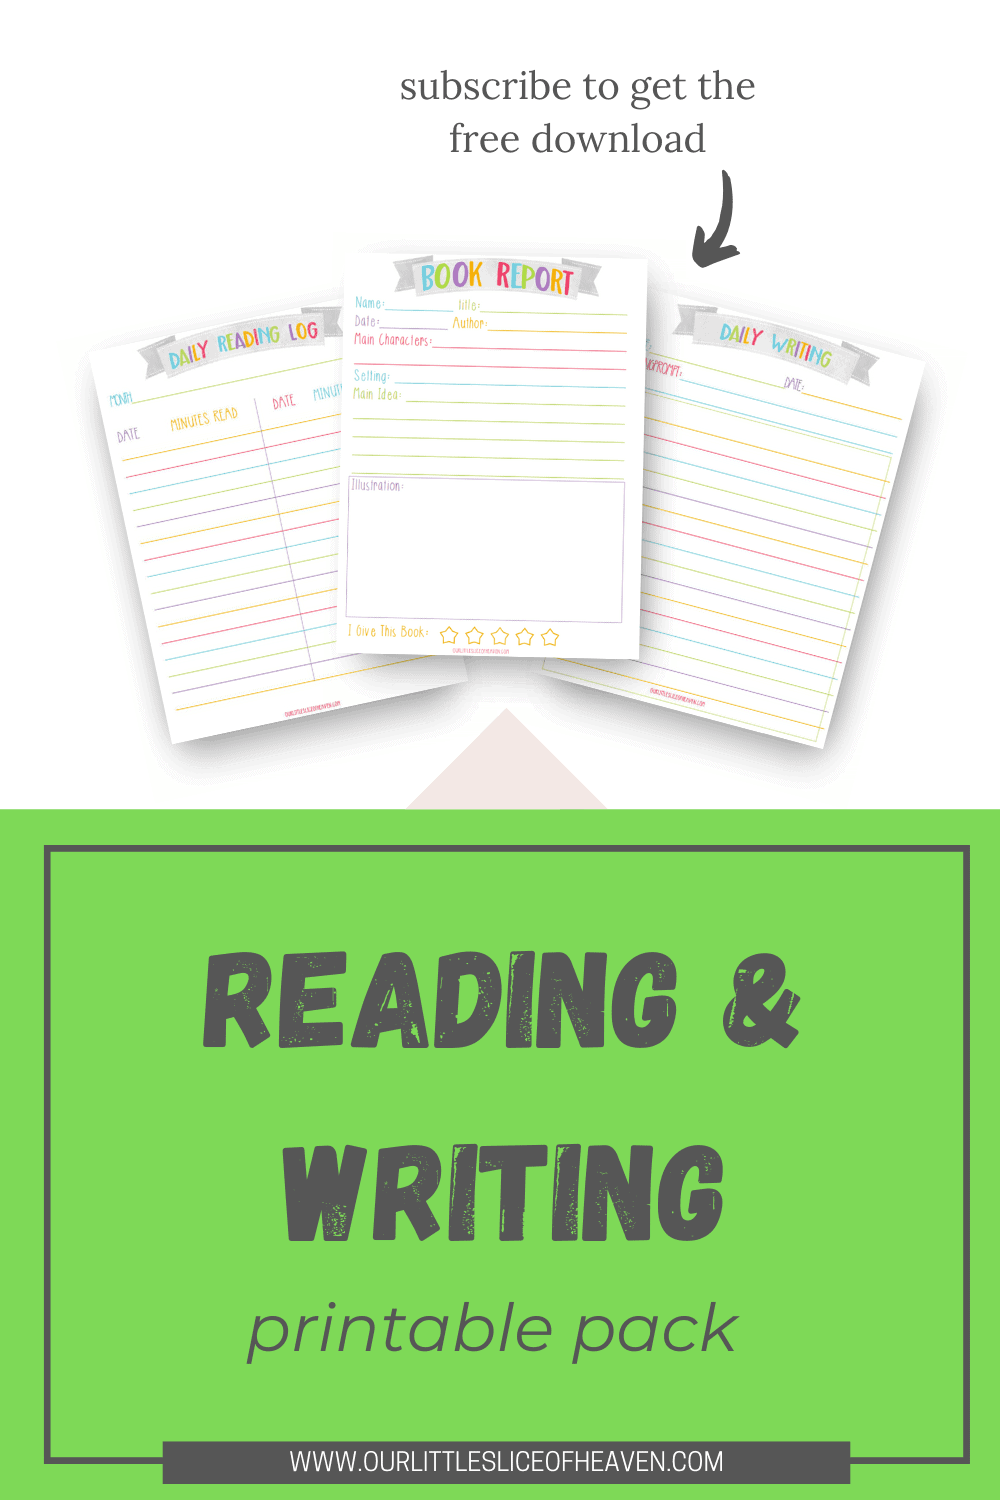 reading & writing printable pack